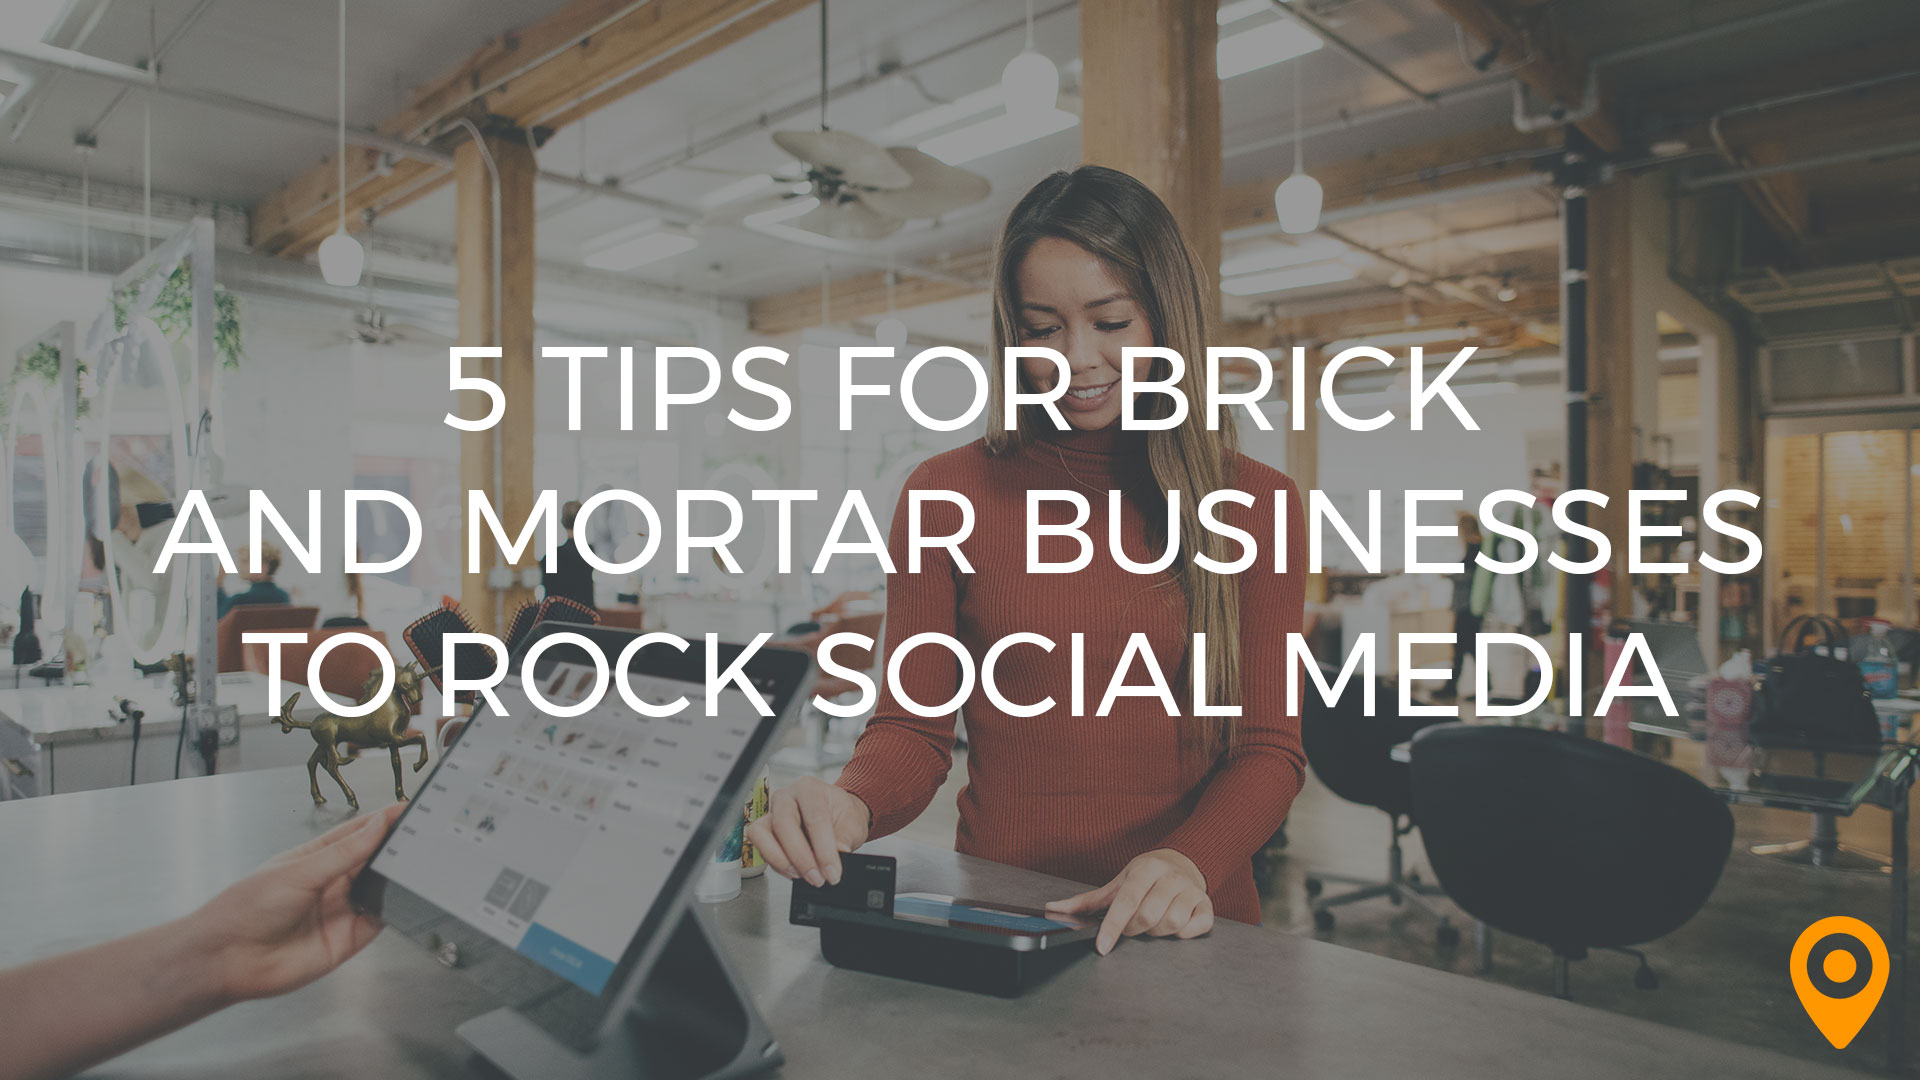 5 Tips for Brick and Mortar Businesses to Rock Social Media | UpCity